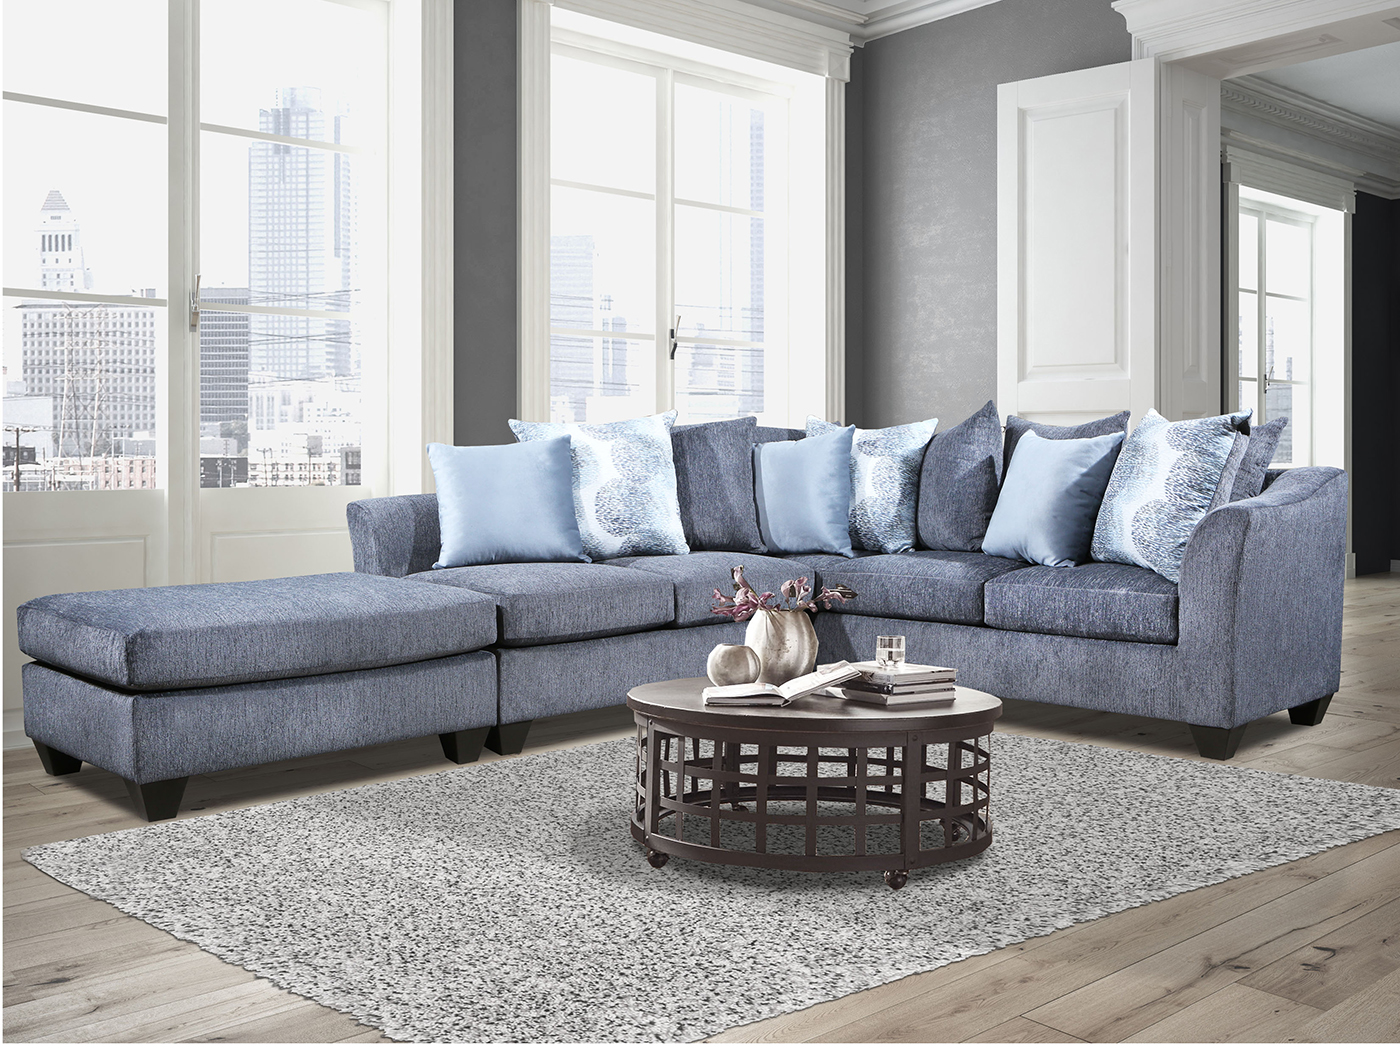 RONDUE 2-pc. SECTIONAL